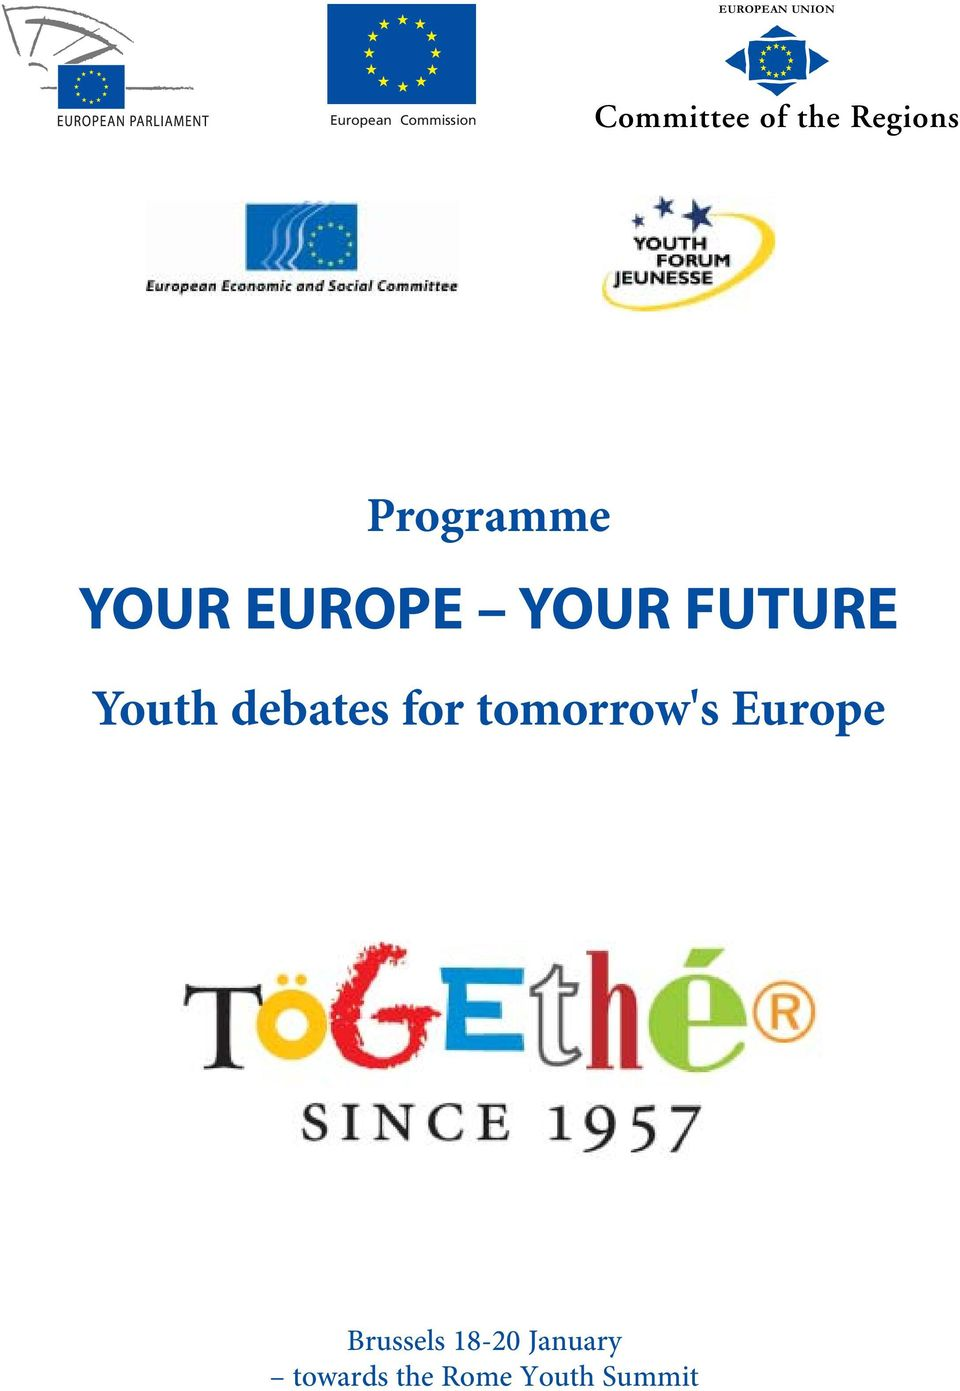 FUTURE Youth debates for tomorrow's Europe